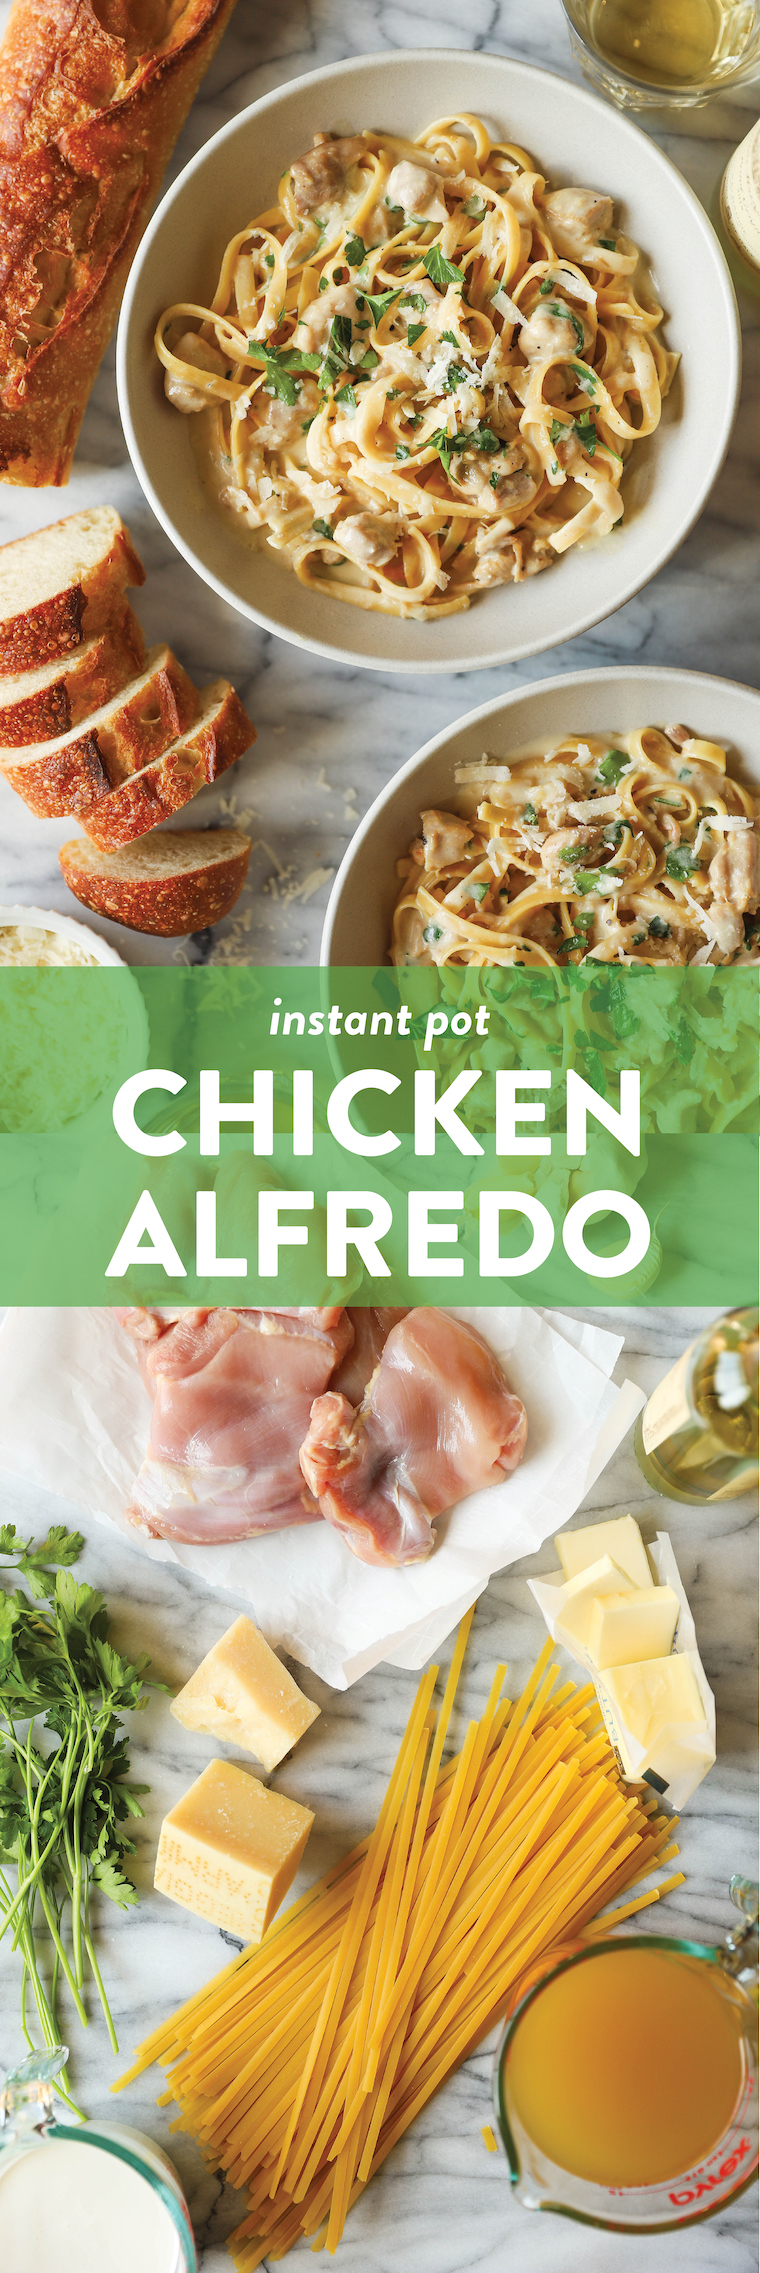 Instant Pot Chicken Alfredo - A one pot, no fuss, no babysitting dinner! Even the uncooked pasta cooks right in the IP, soaking up all that creamy goodness!